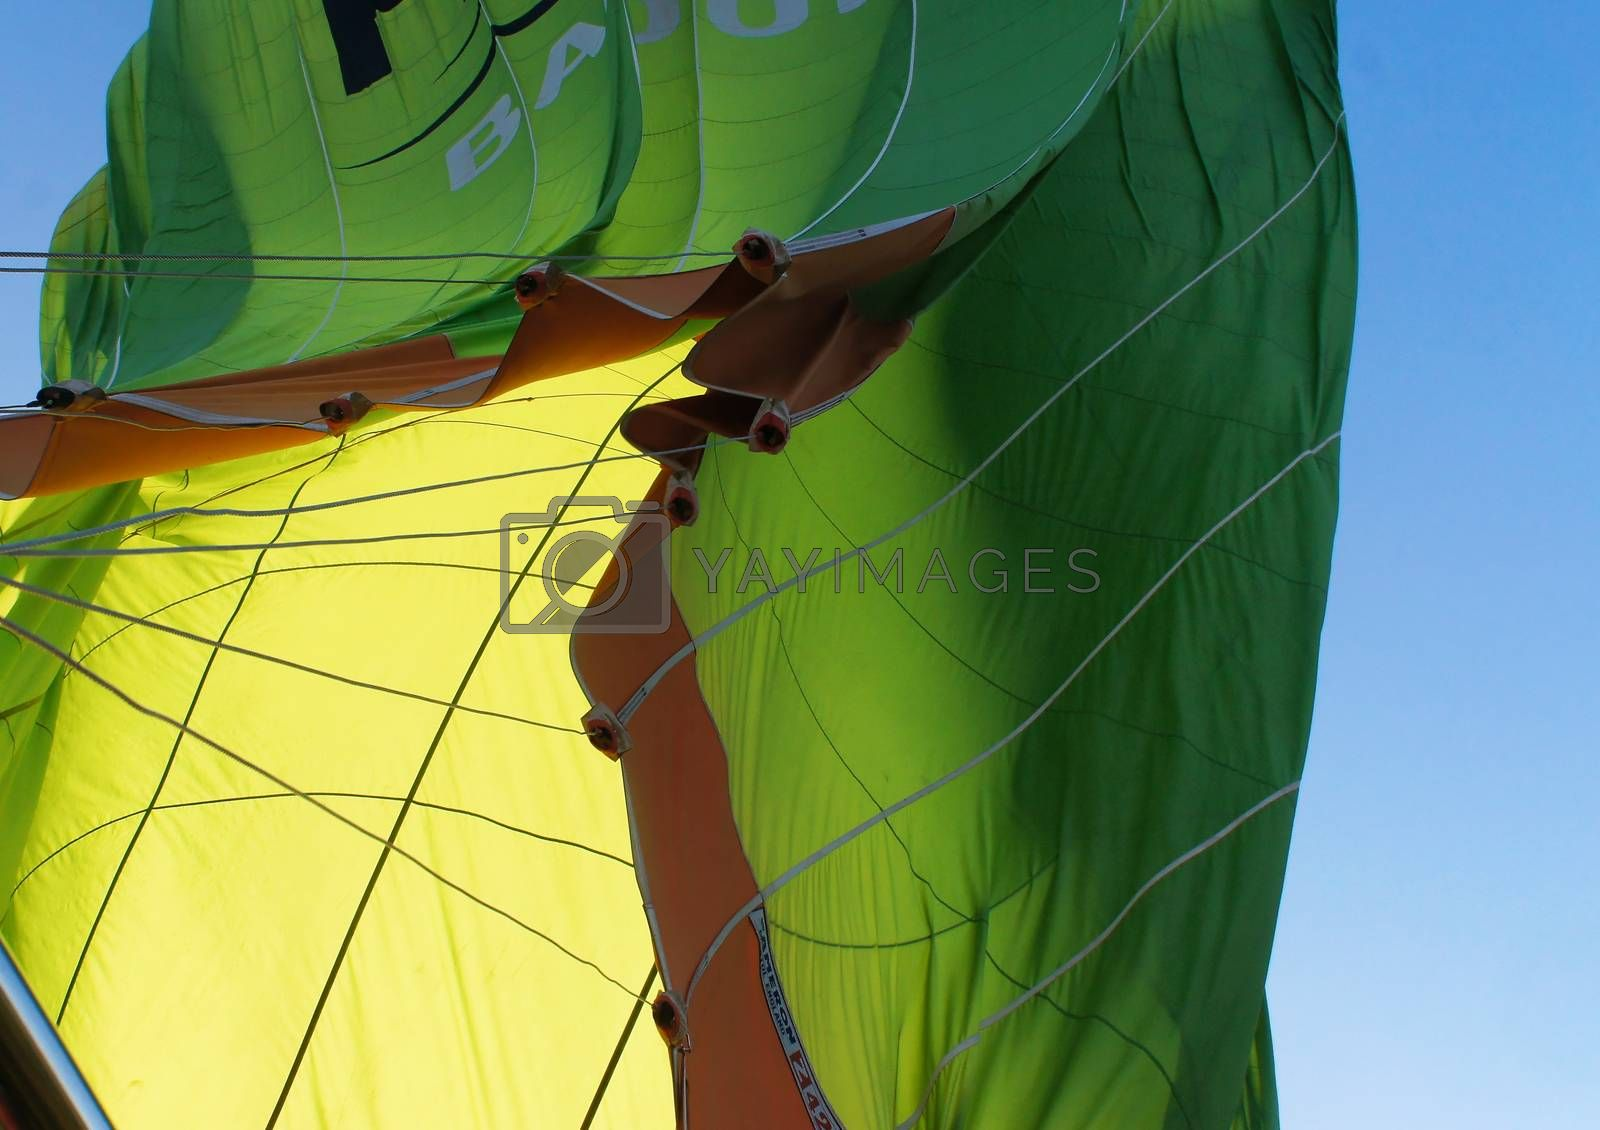 View from below onto the collapsing envelope of a green hot-air balloon, Cappadocia, Anatolia, Turkey